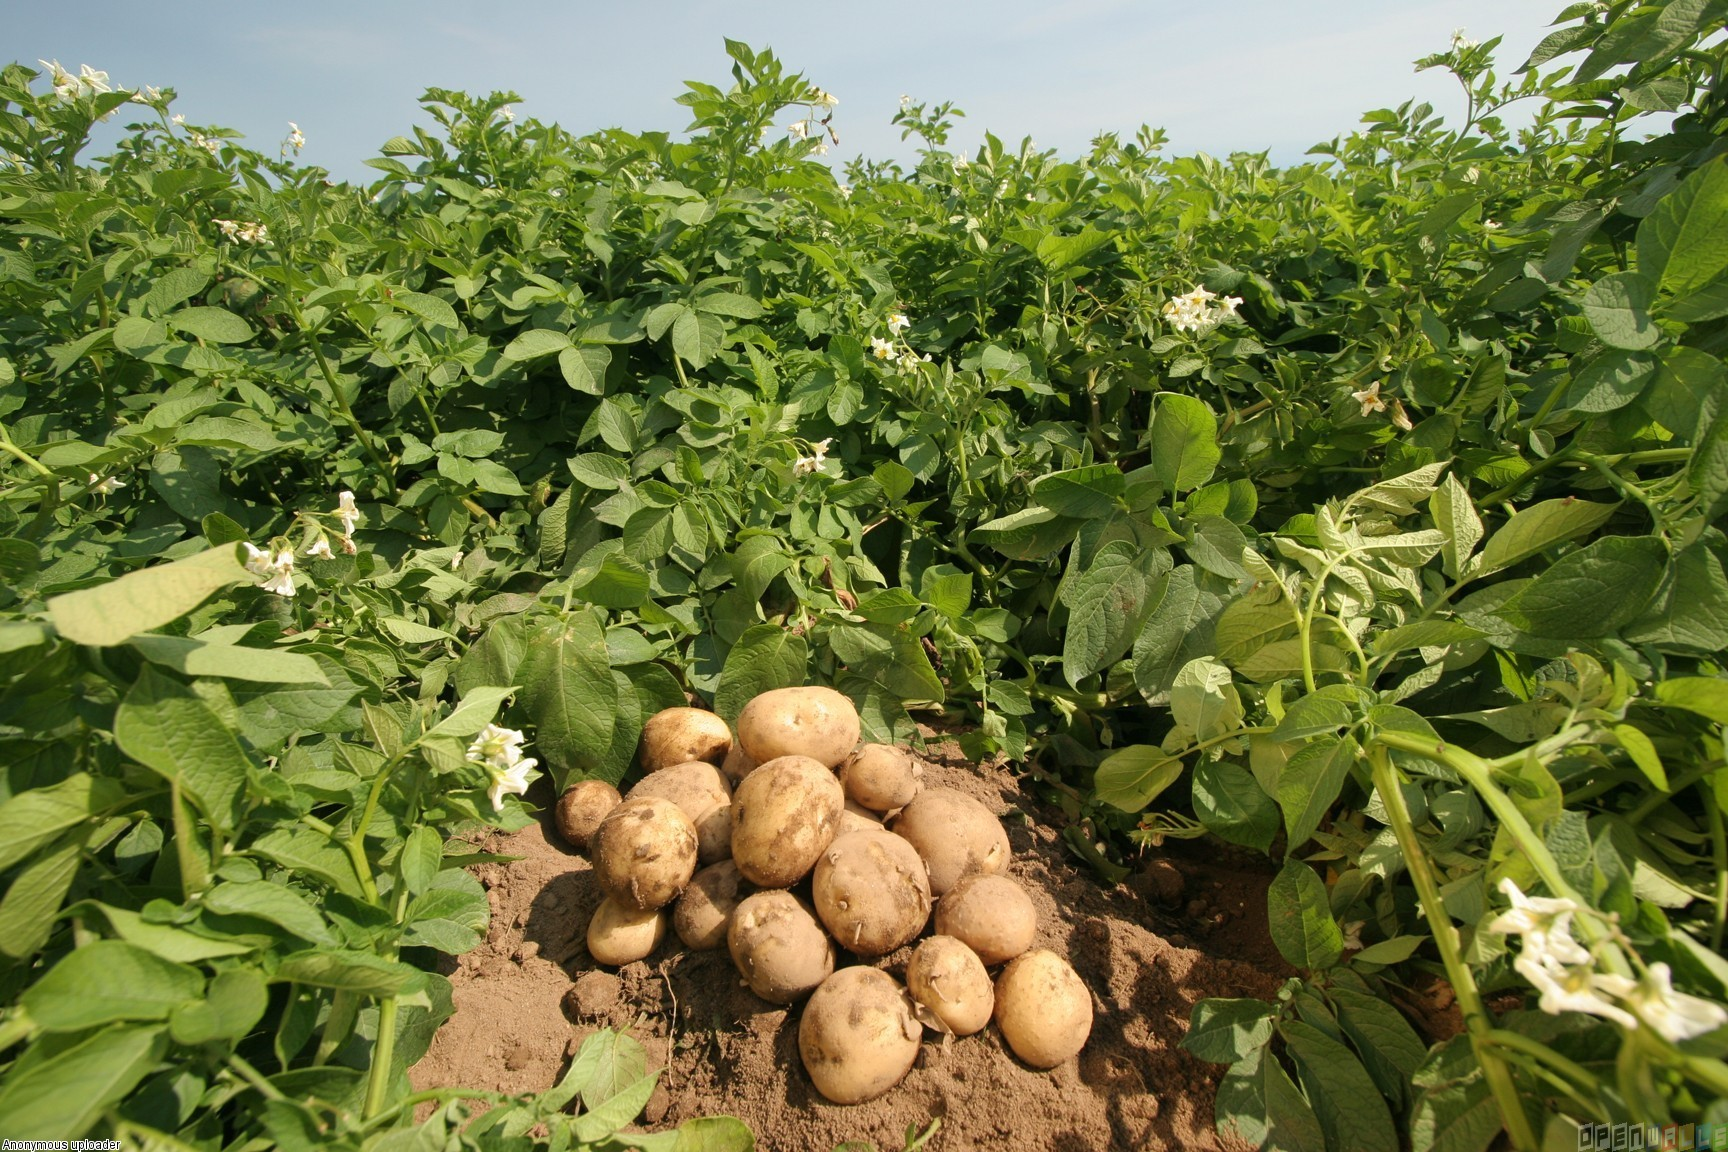 How to Plant Potatoes, Potato Growing Tips, How to Grow Potatoes, Potato Growing Tips and Tricks, Gardening, Vegetable Gardening, Root Vegetables, How to Grow Root Vegetables, Vegetable Gardening, Gardening 101, Popular Pin.